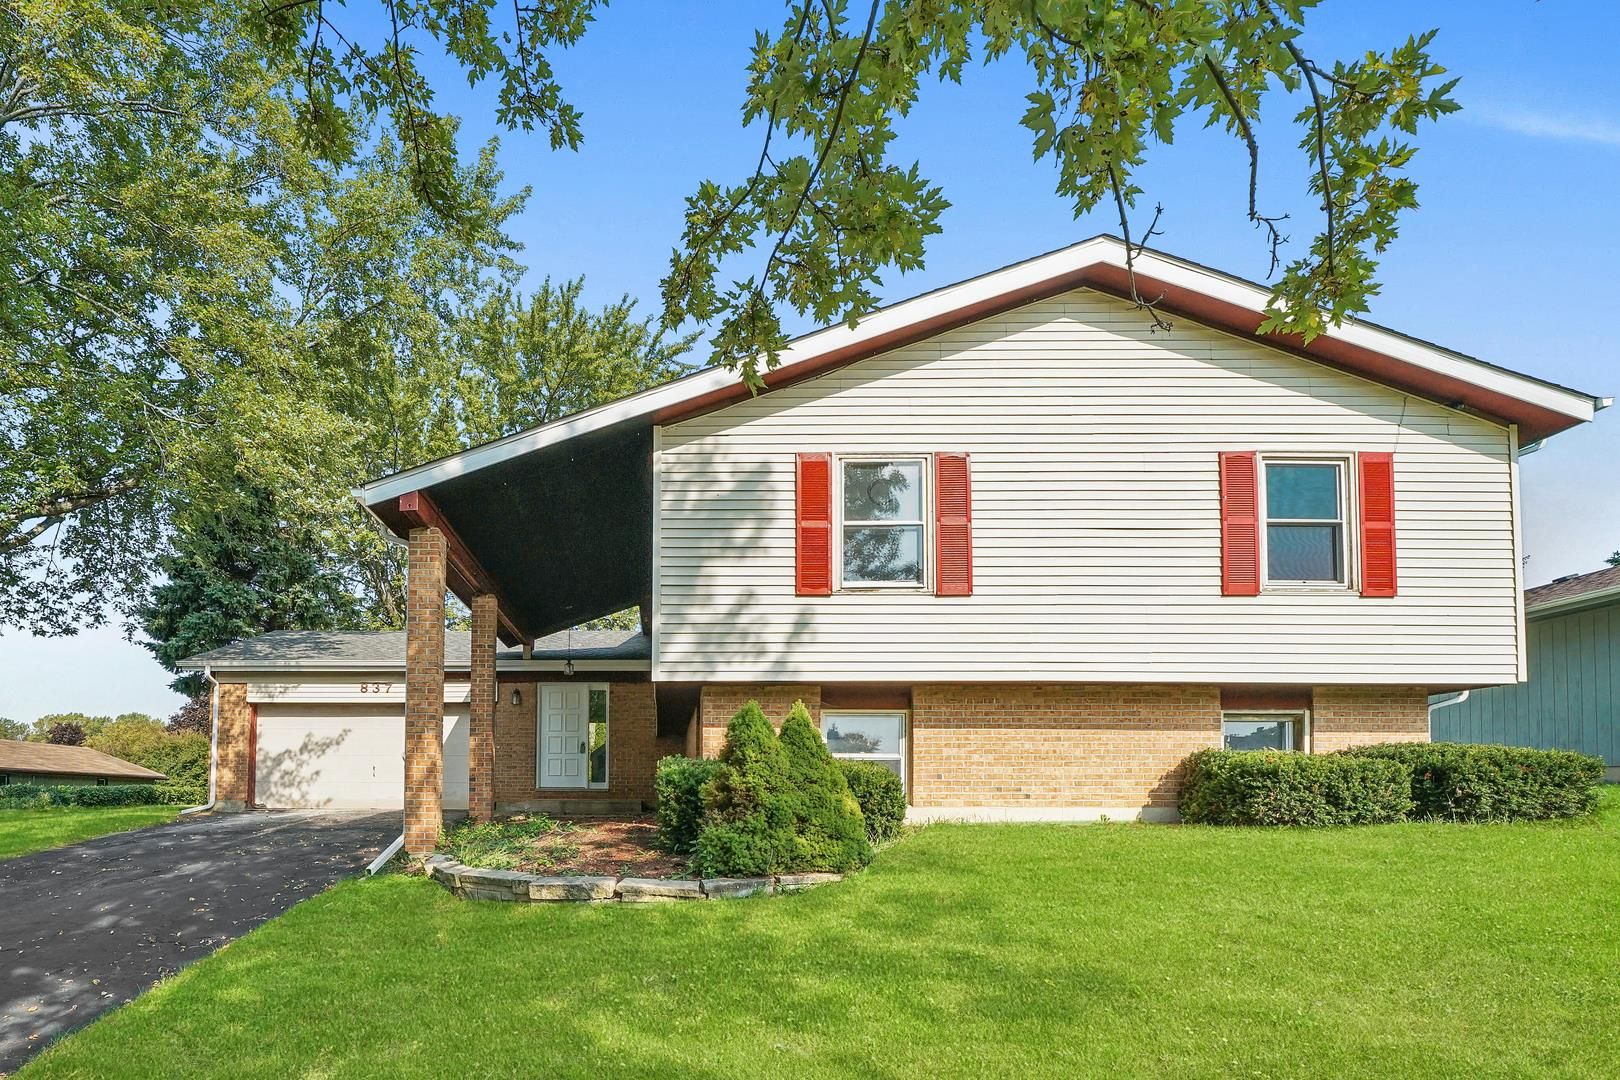 837 Saint Johns Road, Woodstock, IL 60098 - #: 10887685